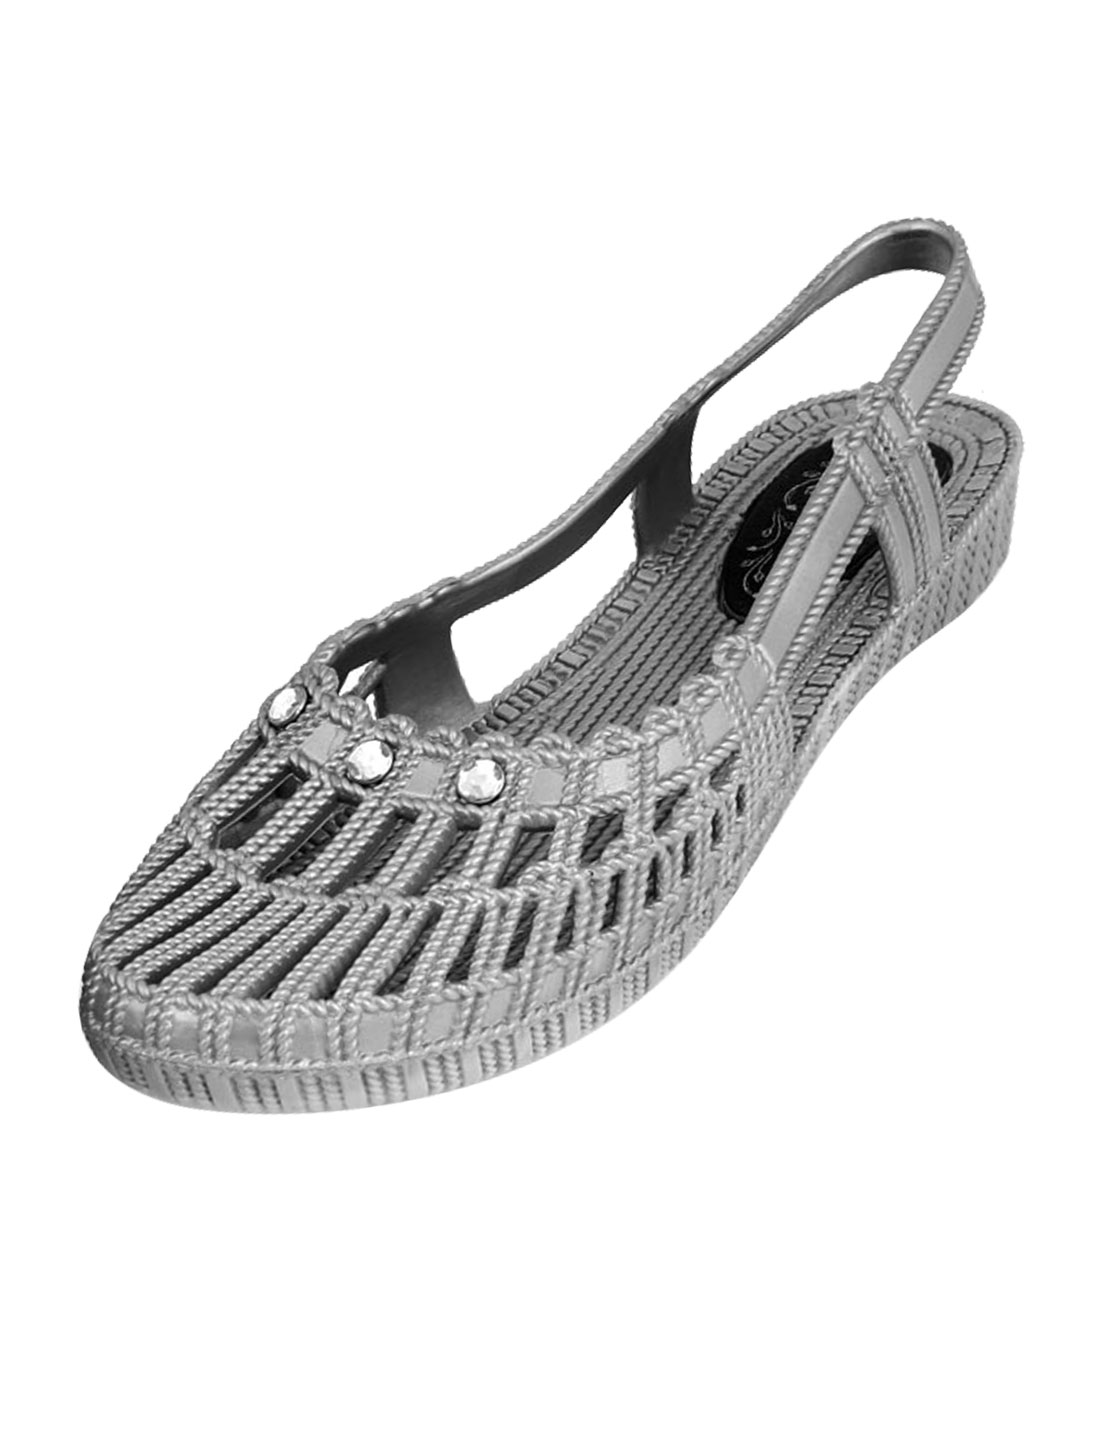 EU Size 38 Gray Footwear Eva Foam Garden Sandal for Lady